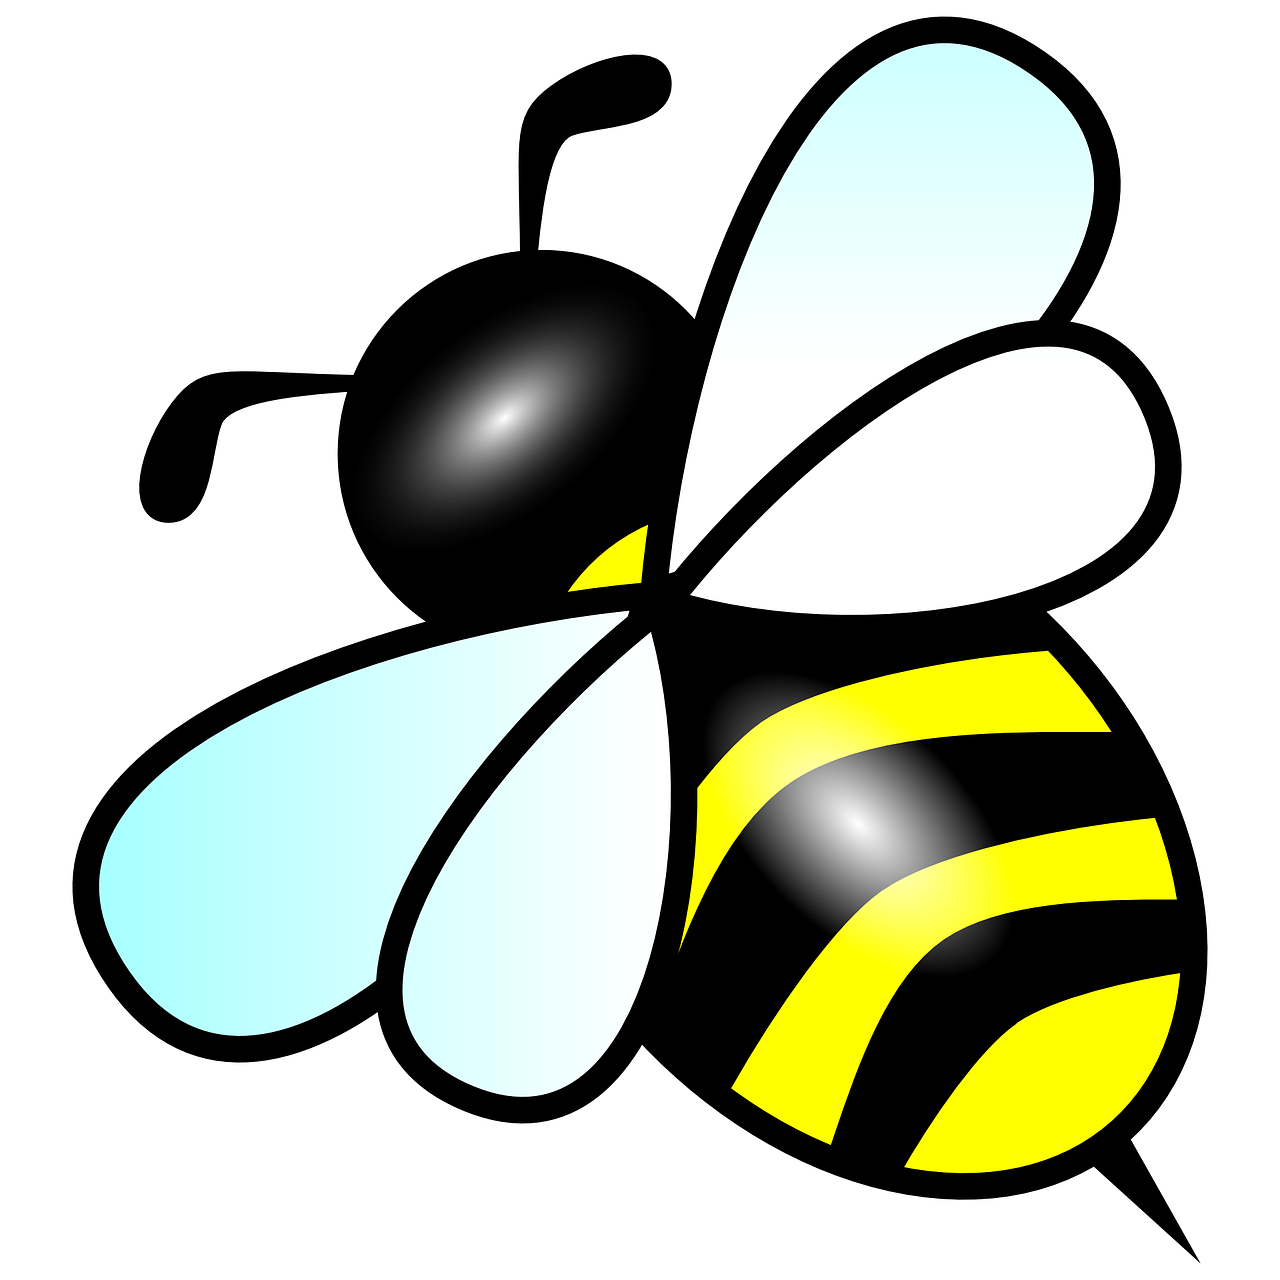 bee-153326_1280.png